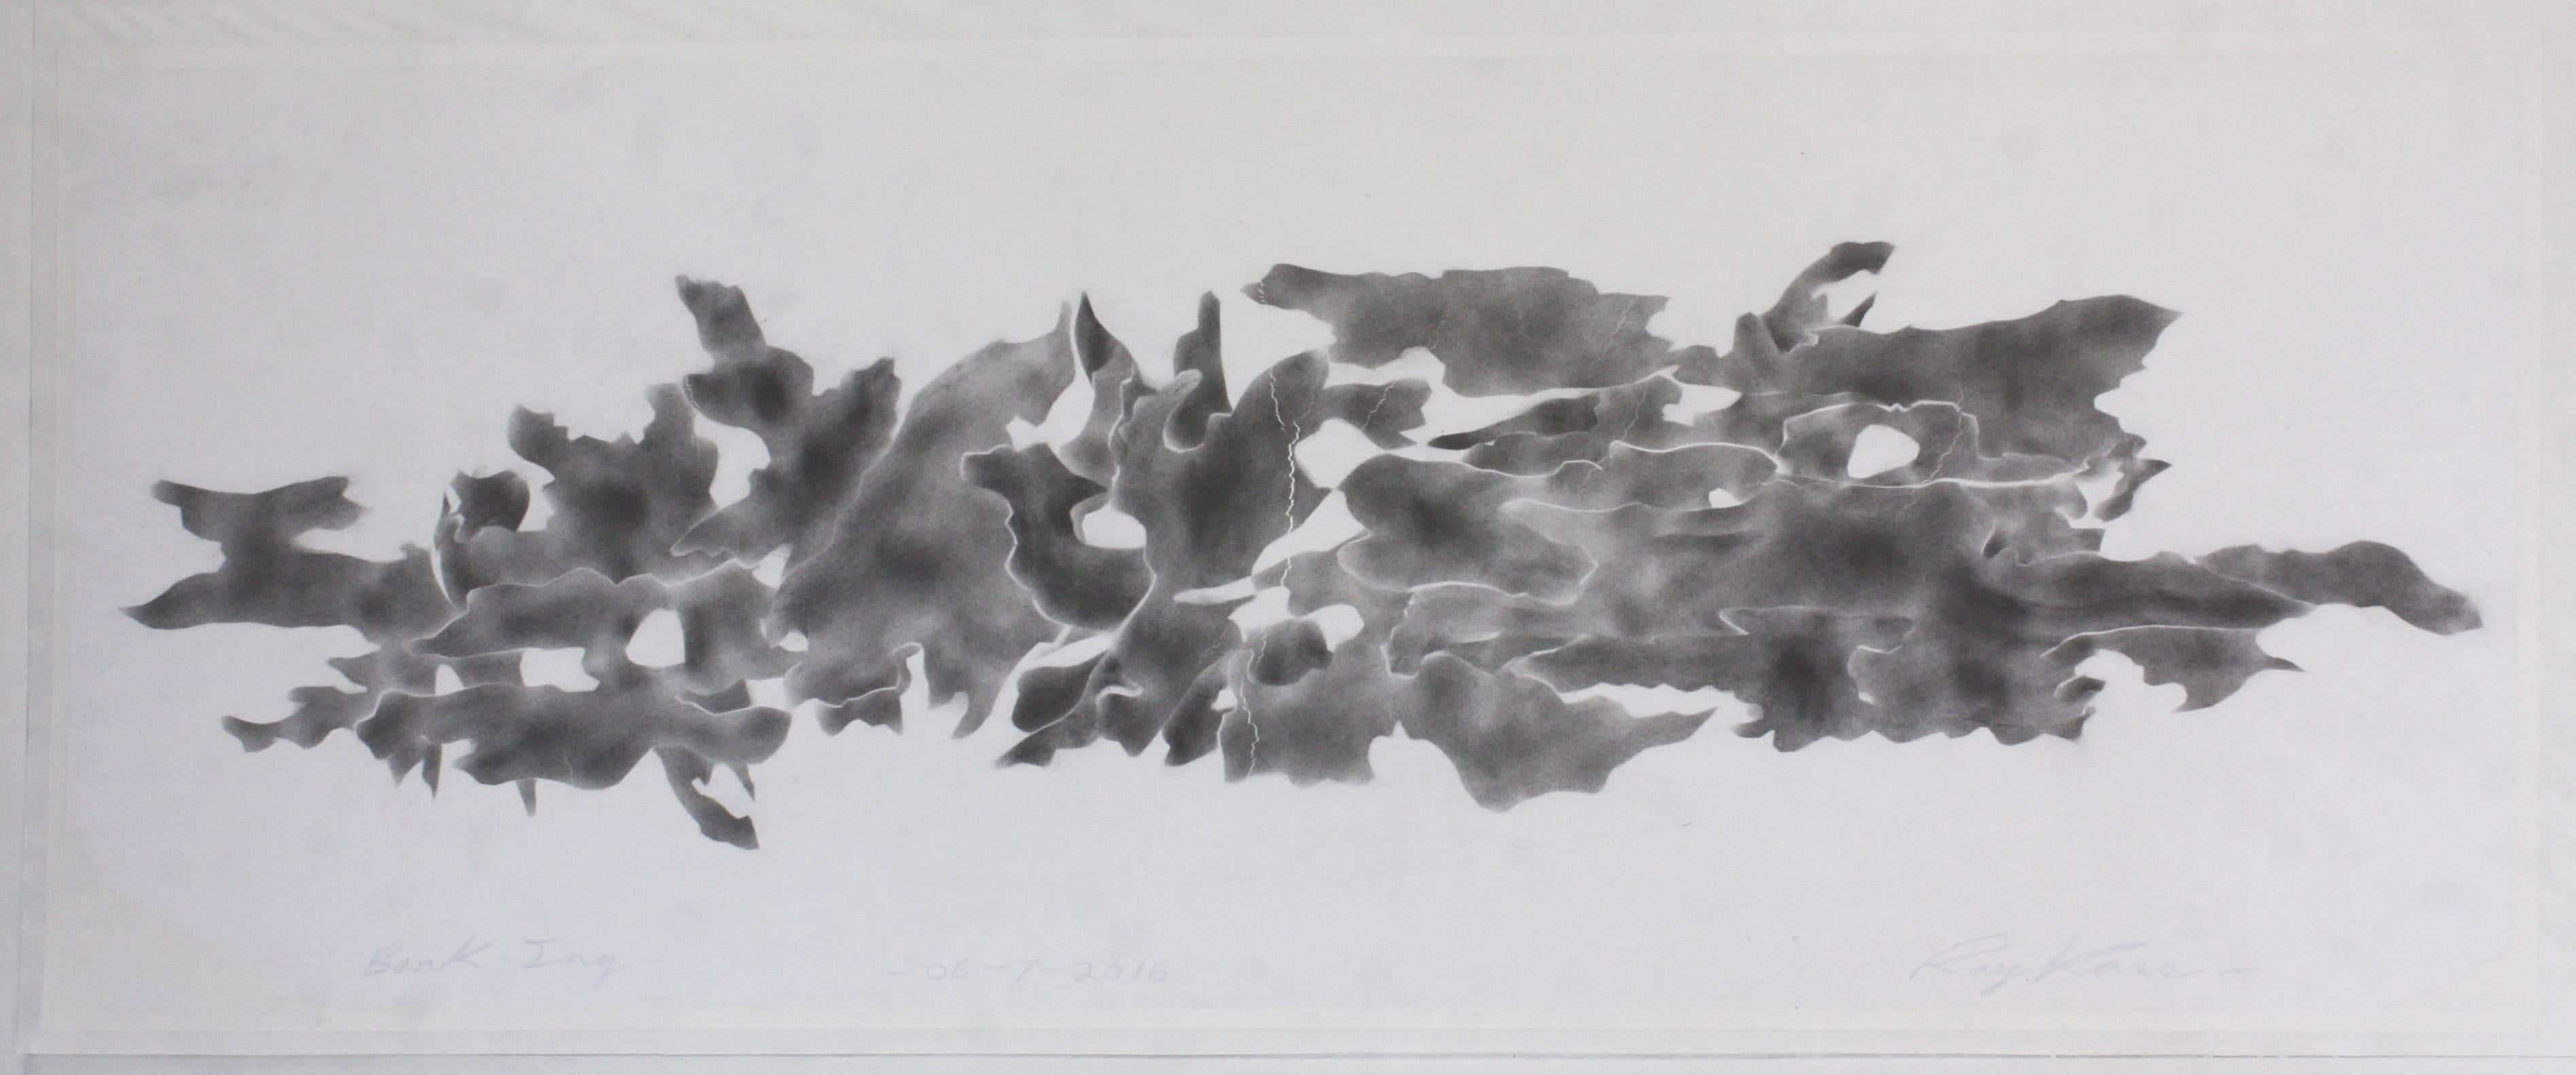 Ray Kass, Bark-Ing 06-07-2016, Abstract graphite drawing on paper, 2016